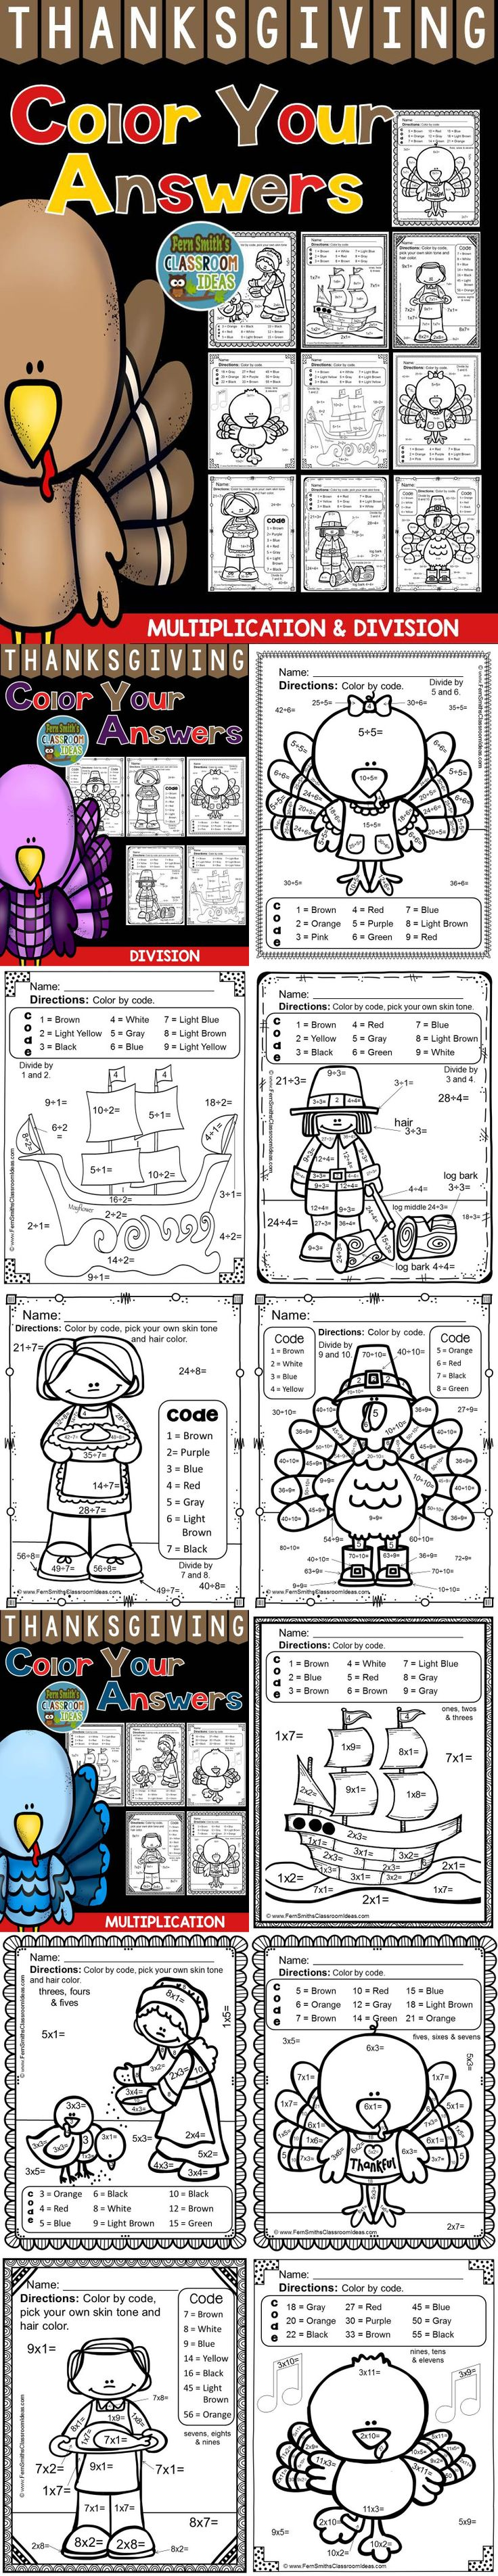 thanksgiving color by number mixed multiplication and division bundle color by code resources. Black Bedroom Furniture Sets. Home Design Ideas